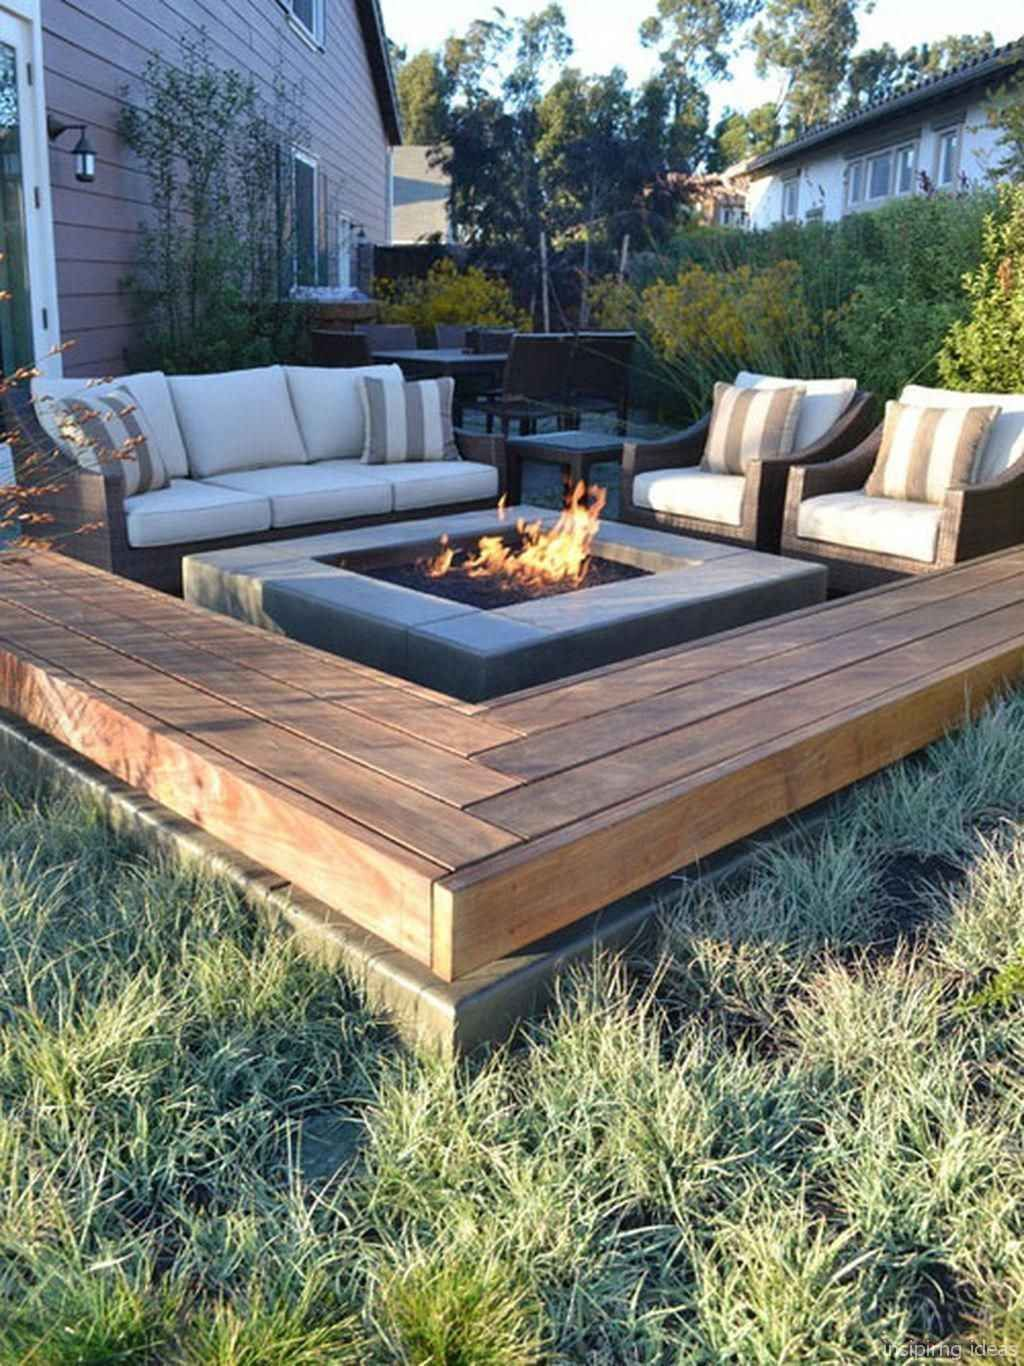 100 Easy Cheap Backyard Fire Pit Seating Area Design Ideas ... on Simple Patio Designs With Fire Pit id=39019